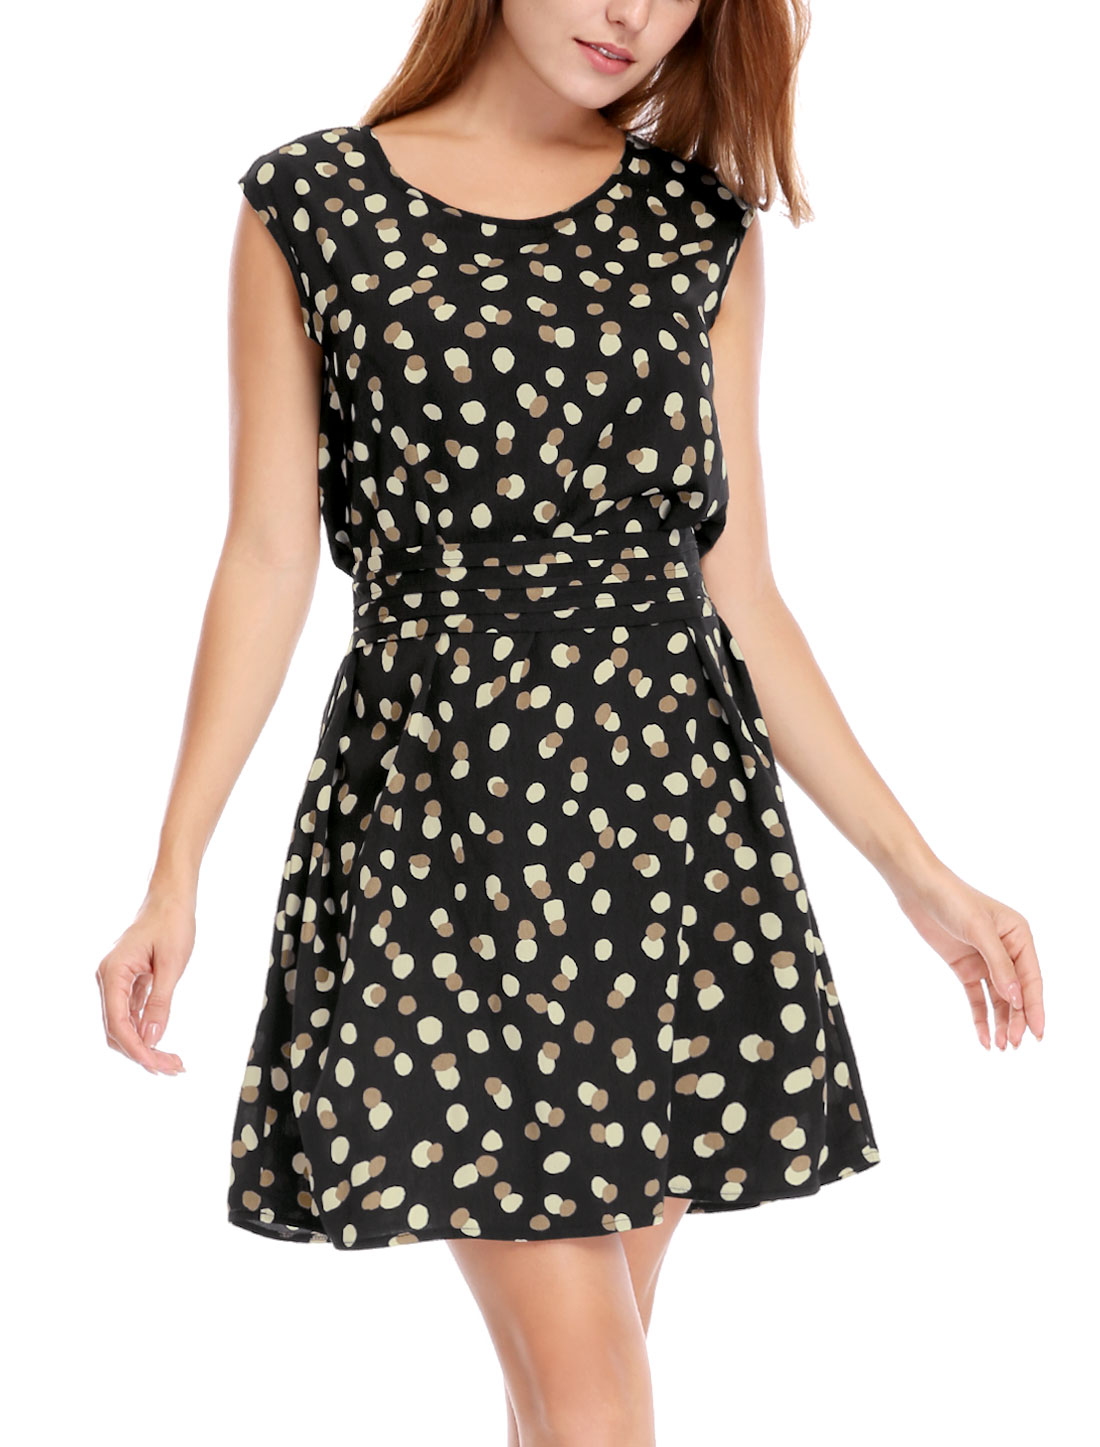 Women Dots Sleeveless Belted Above Knee A Line Dress Black S